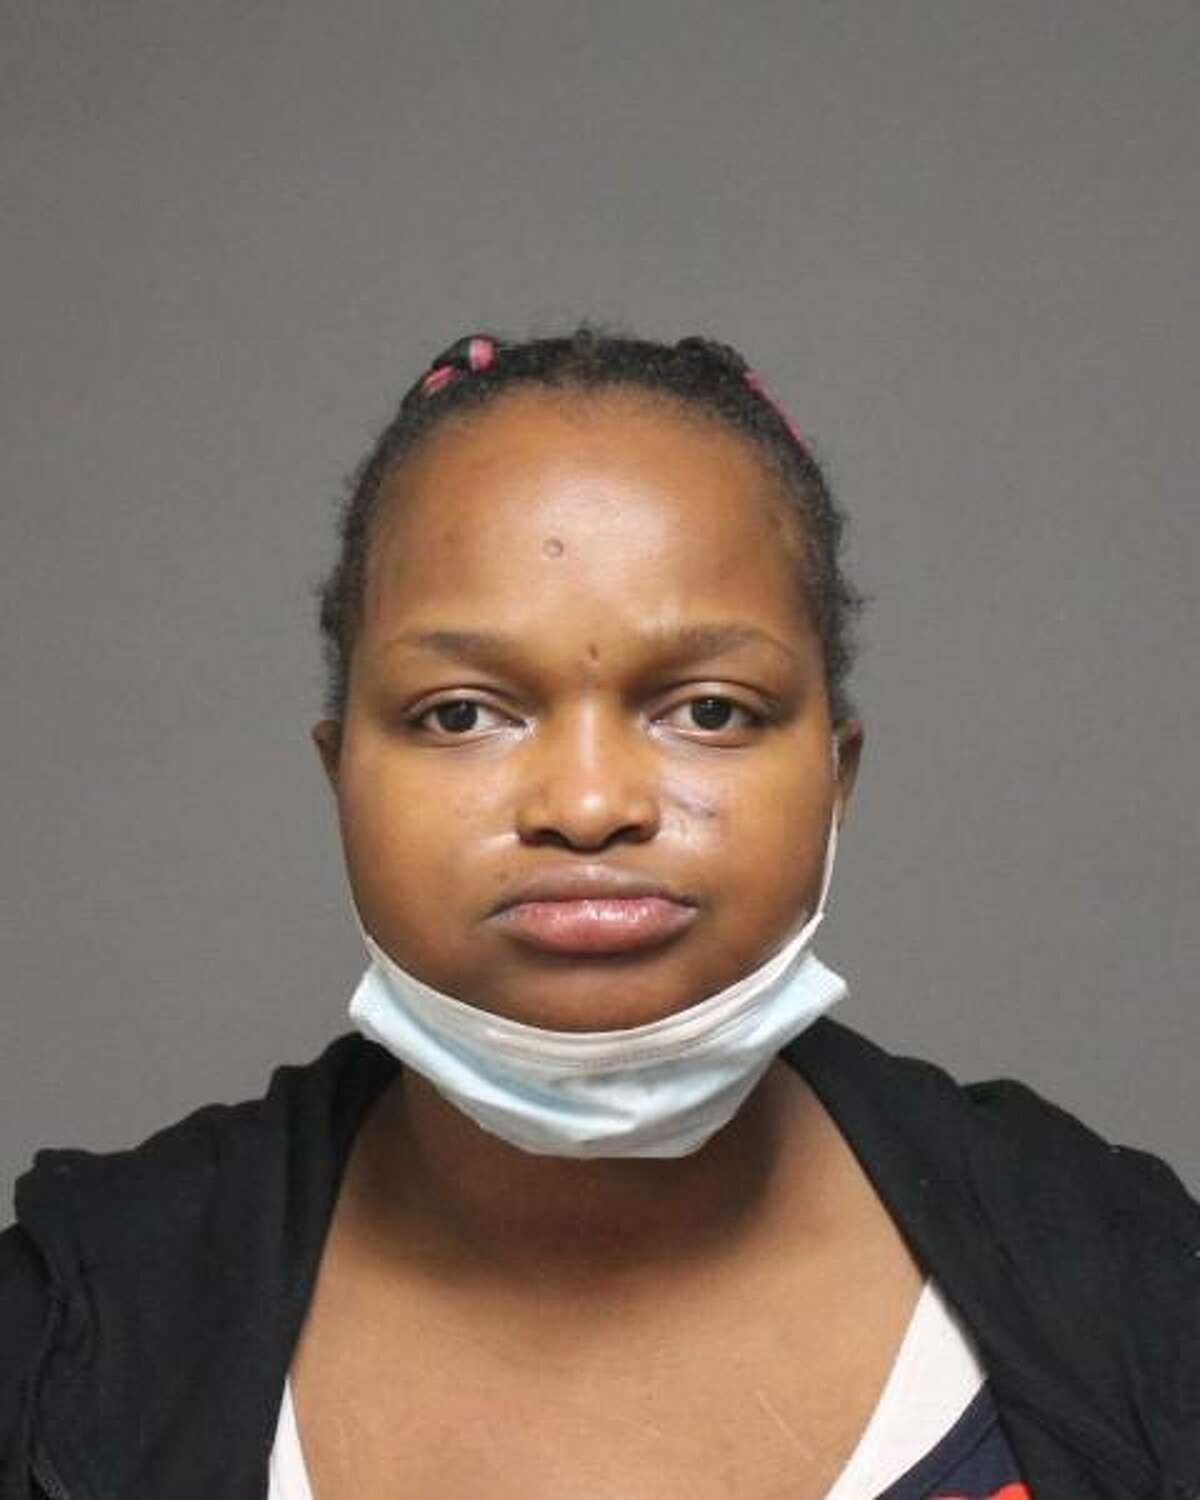 Felicia Cooper was charged with second-degree forgery and third-degree larceny for allegedly altering and cashing the bank check.